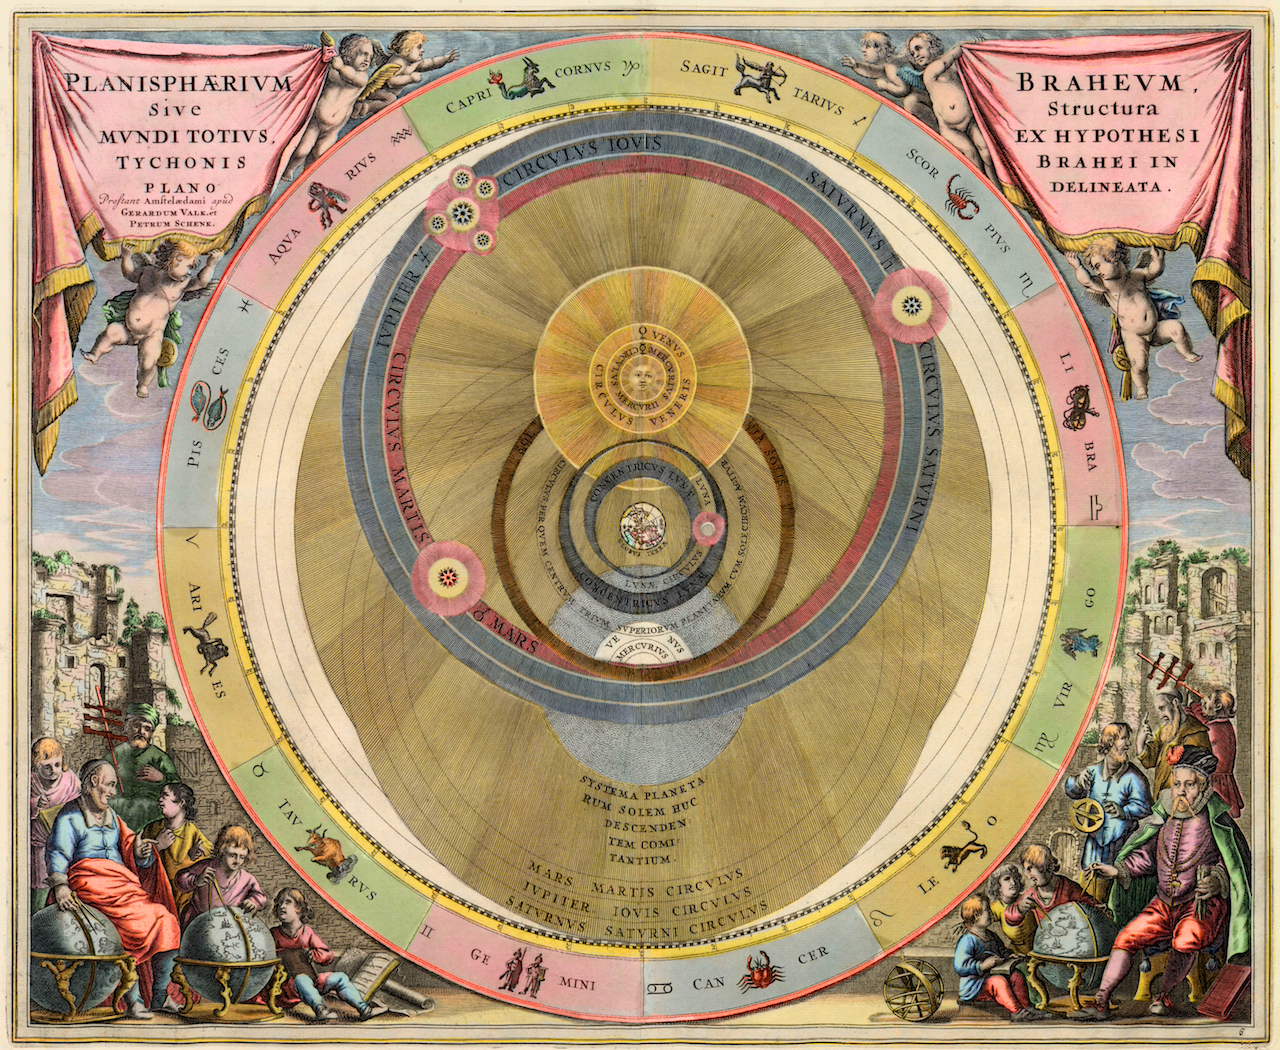 """1716 illustration of Brahe's geocentric-heliocentric system from Andreas Cellarius's """"Harmonia macrocosmica (Cosmic Harmony)"""" (Courtesy the U. of Michigan Library)"""